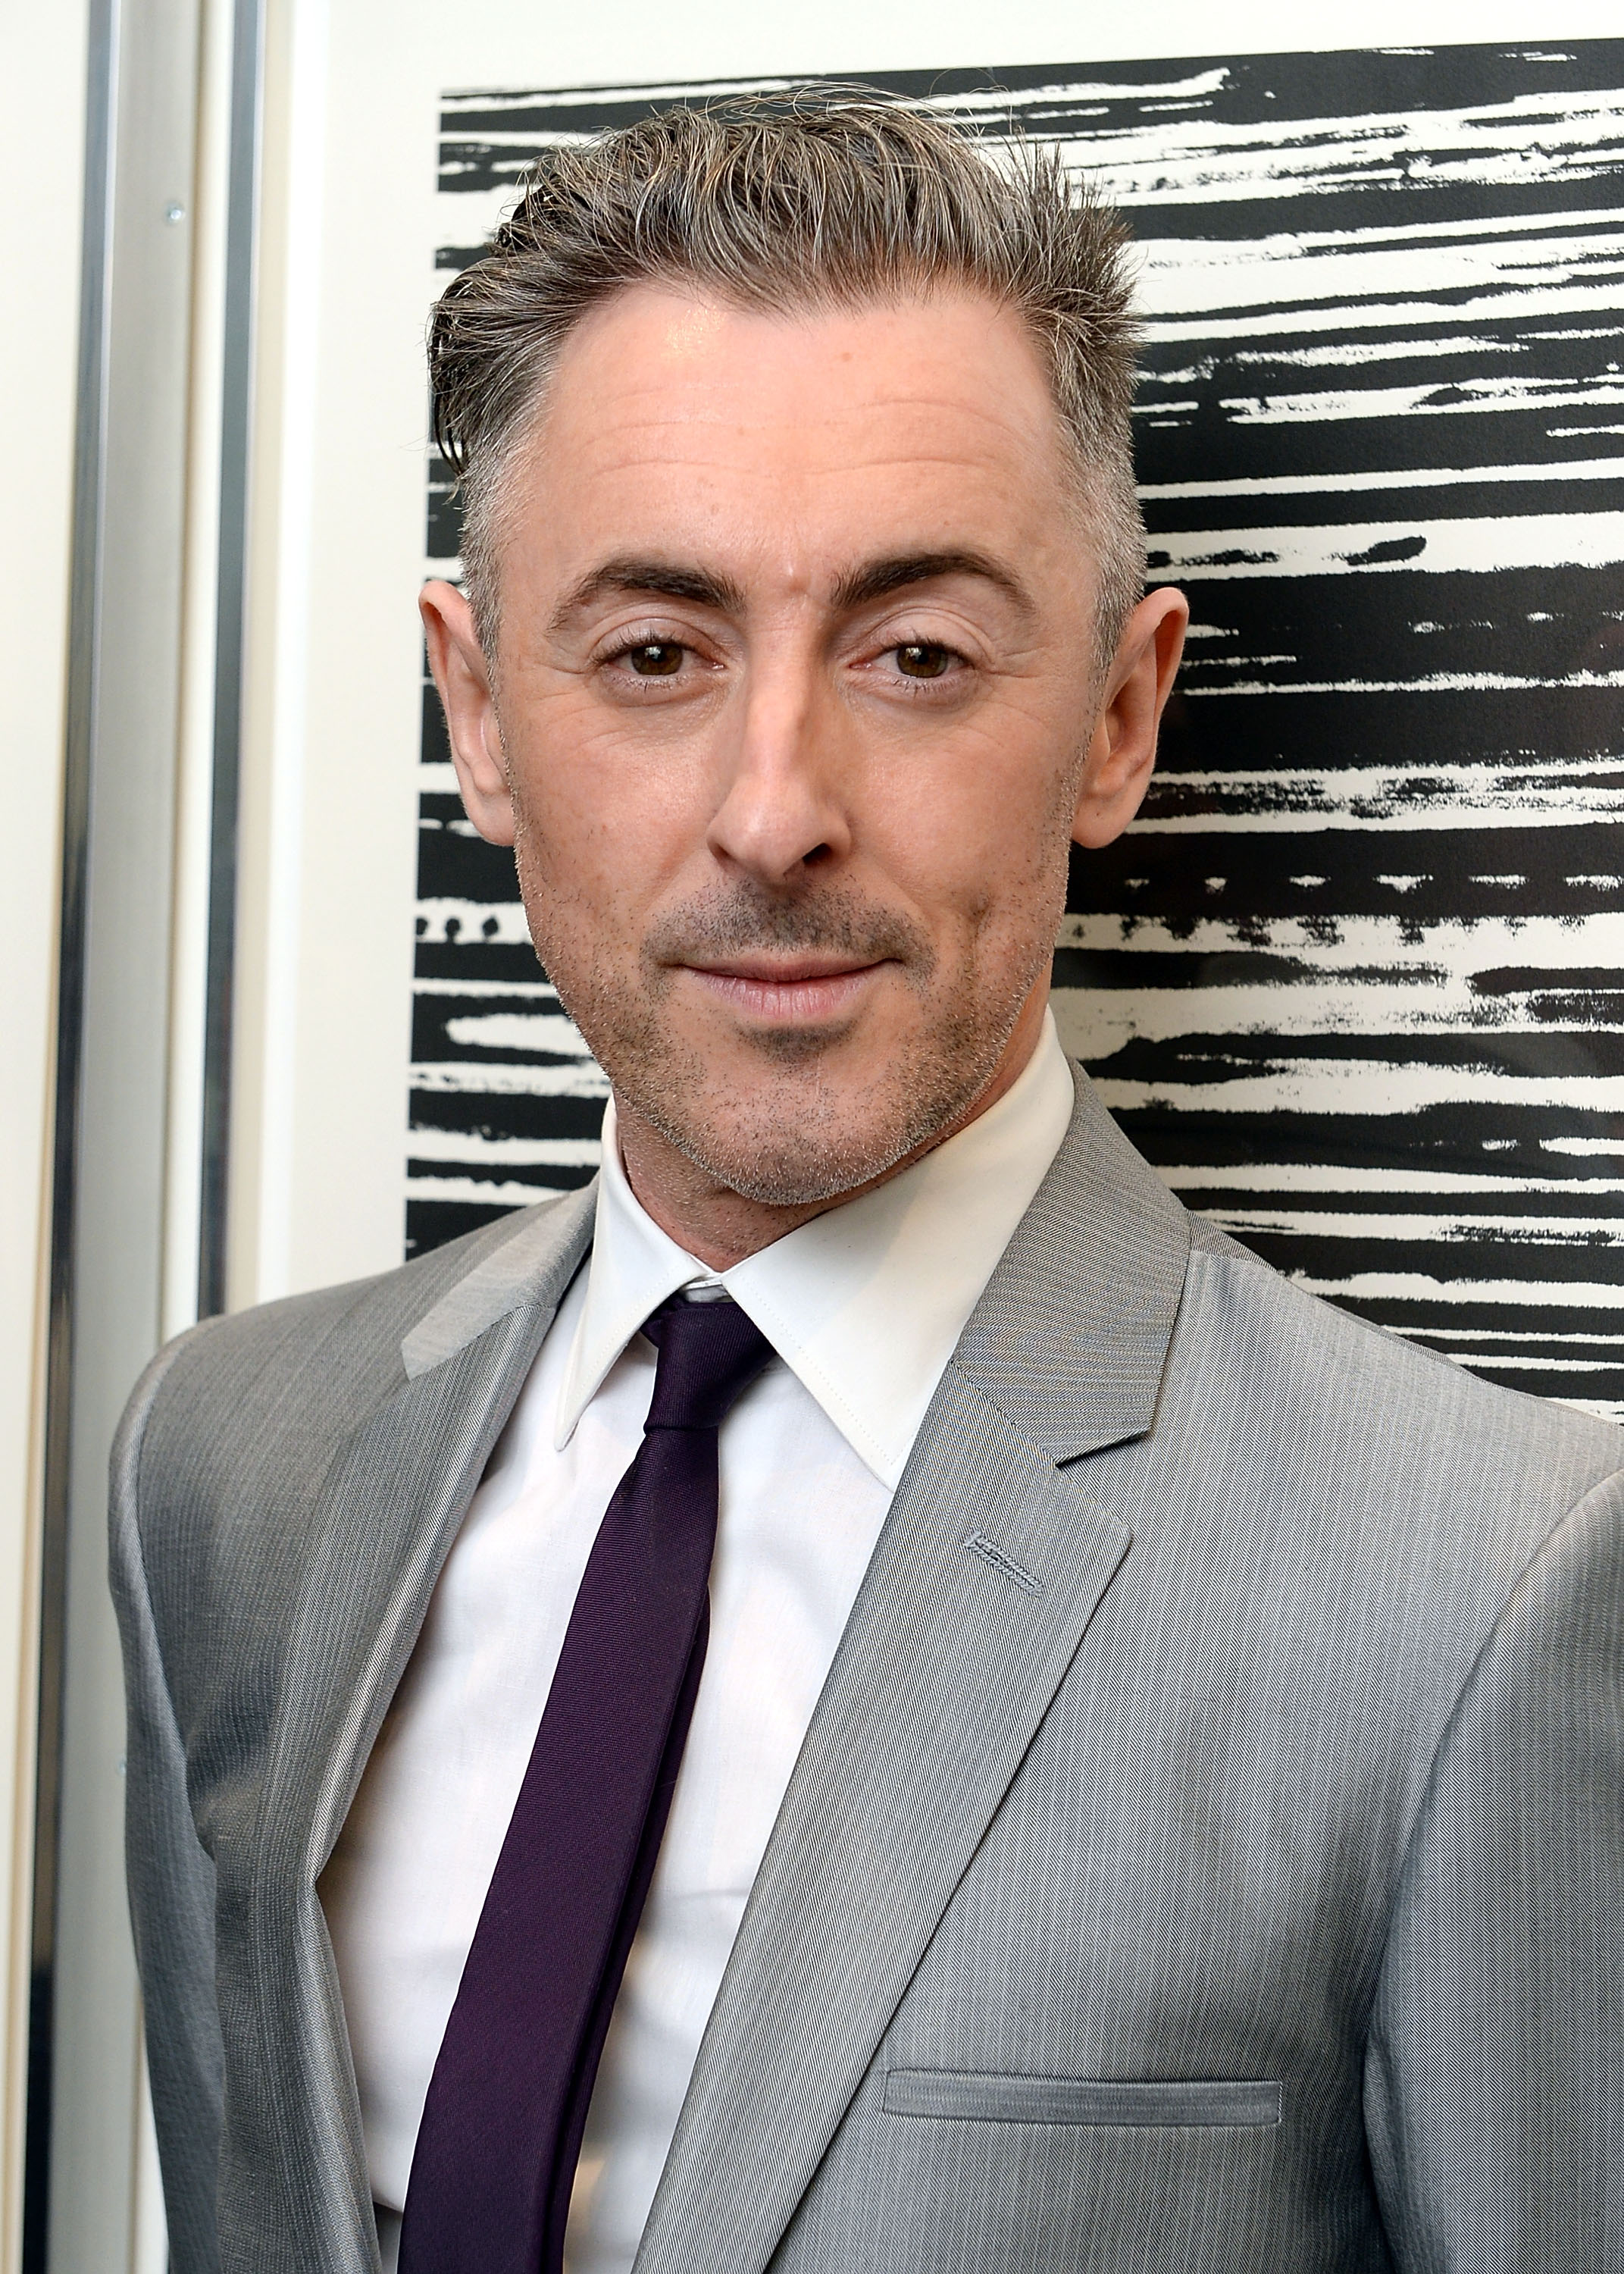 Alan Cumming attends the HRC Marriage for Equality USA celebration at the Calvin Klein Boutique on April 17, 2013 in New York City.